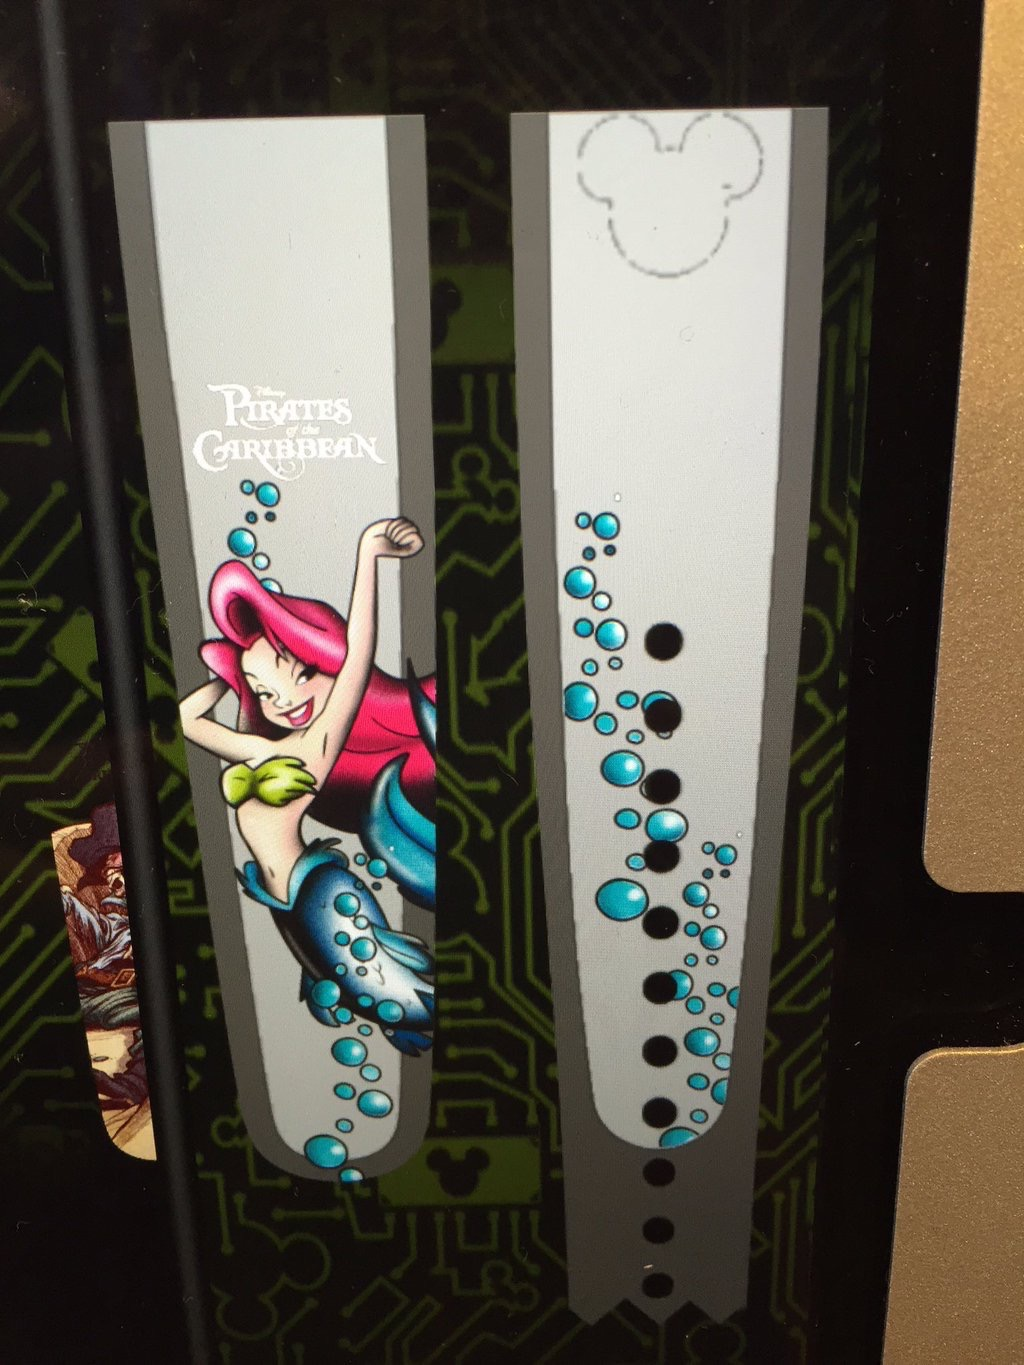 Even more MagicBand On Demand designs released including